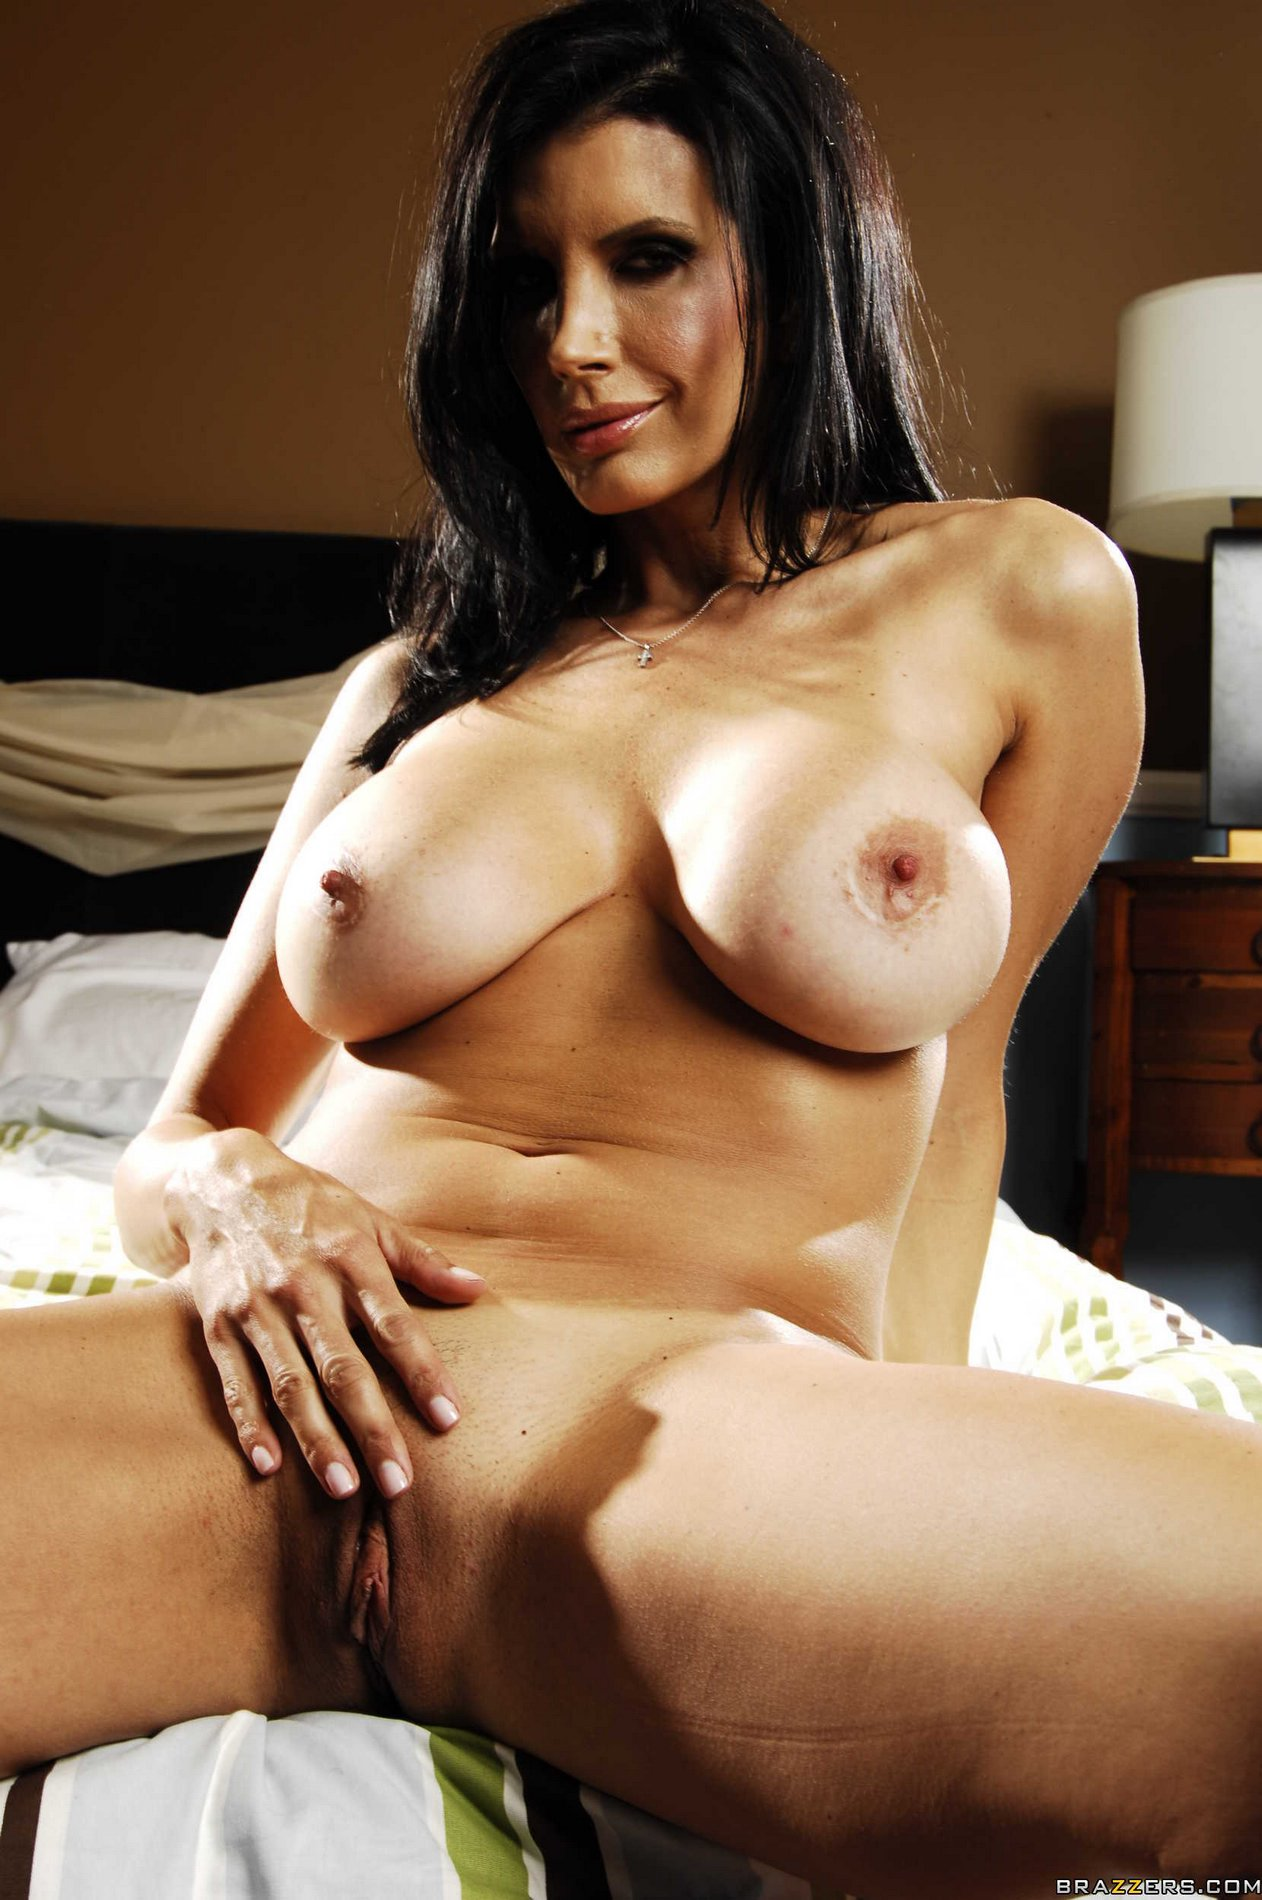 Shay Sights in jeans and heels strips for camera - My ...